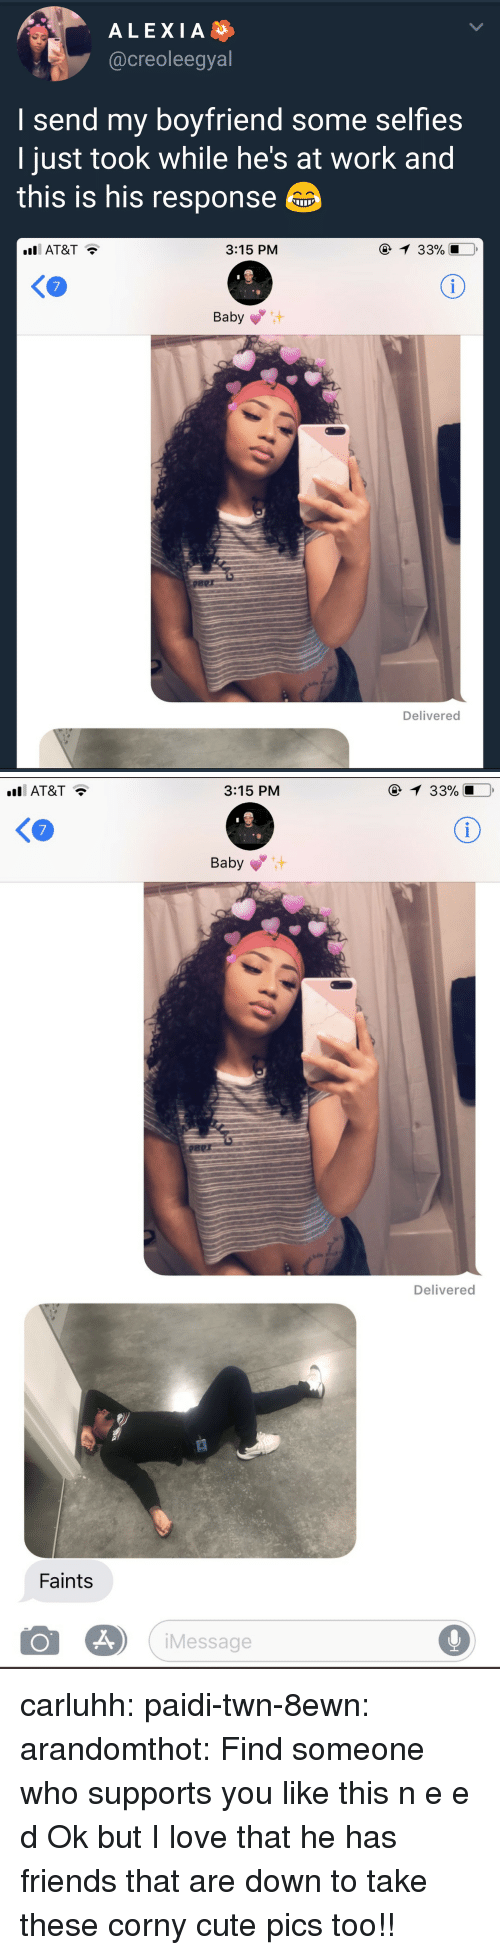 Corny: ALEXIA  @creoleegyal  I send my boyfriend some selfies  ljust took while he's at work and  this is his response  AT&T  3:15 PM  33901.0,  Baby  Delivered   AT&T  3:15 PM  1 33%  KO  7  Baby  Delivered  Faints  Message carluhh:  paidi-twn-8ewn:  arandomthot:  Find someone who supports you like this  n e e d  Ok but I love that he has friends that are down to take these corny cute pics too!!